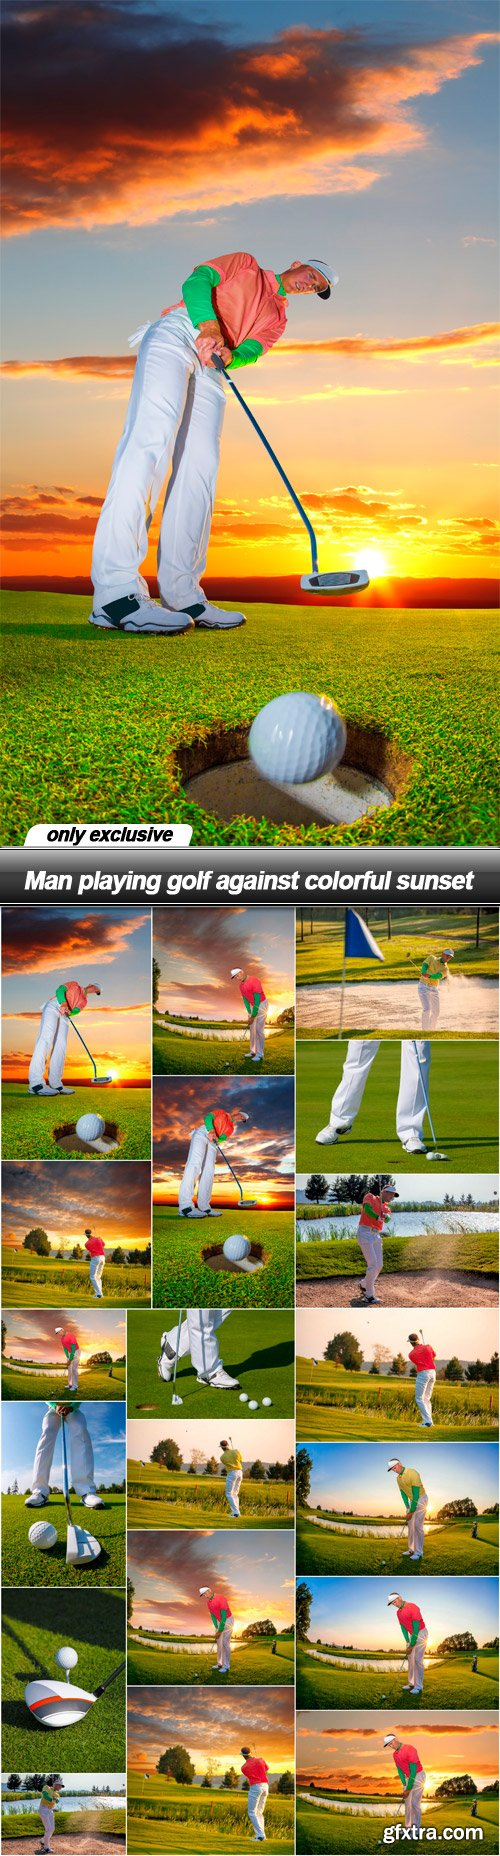 Man playing golf against colorful sunset - 19 UHQ JPEG